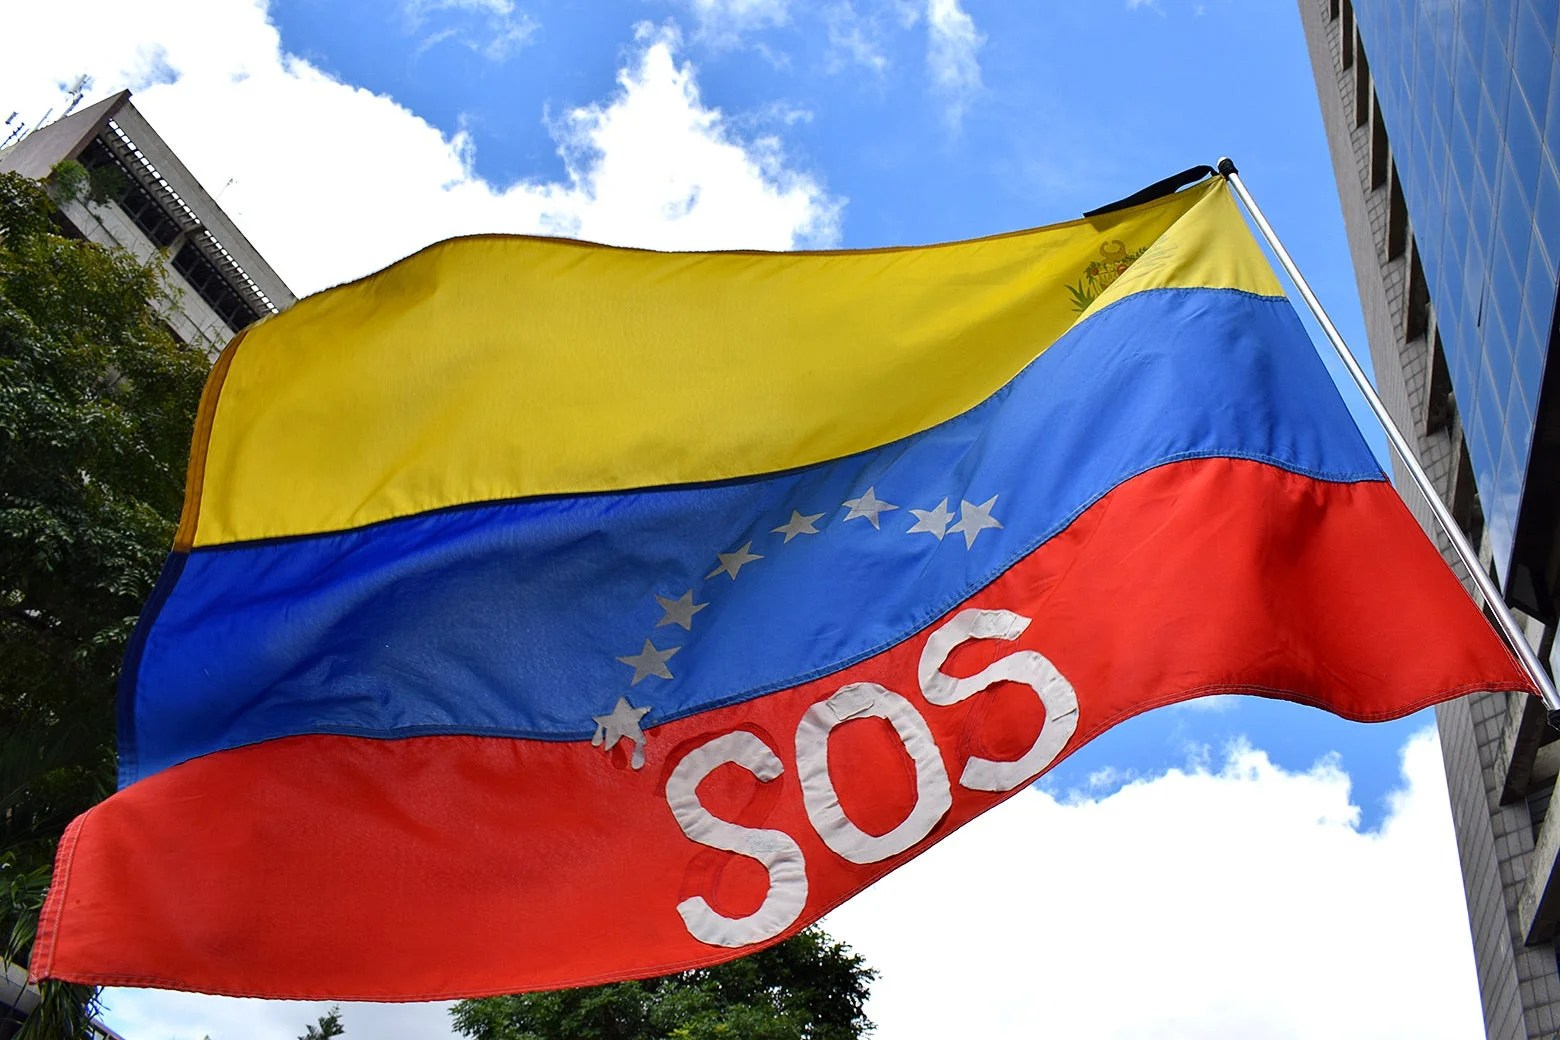 An SOS flag flies above protesters at a July 2019 march in Caracas.